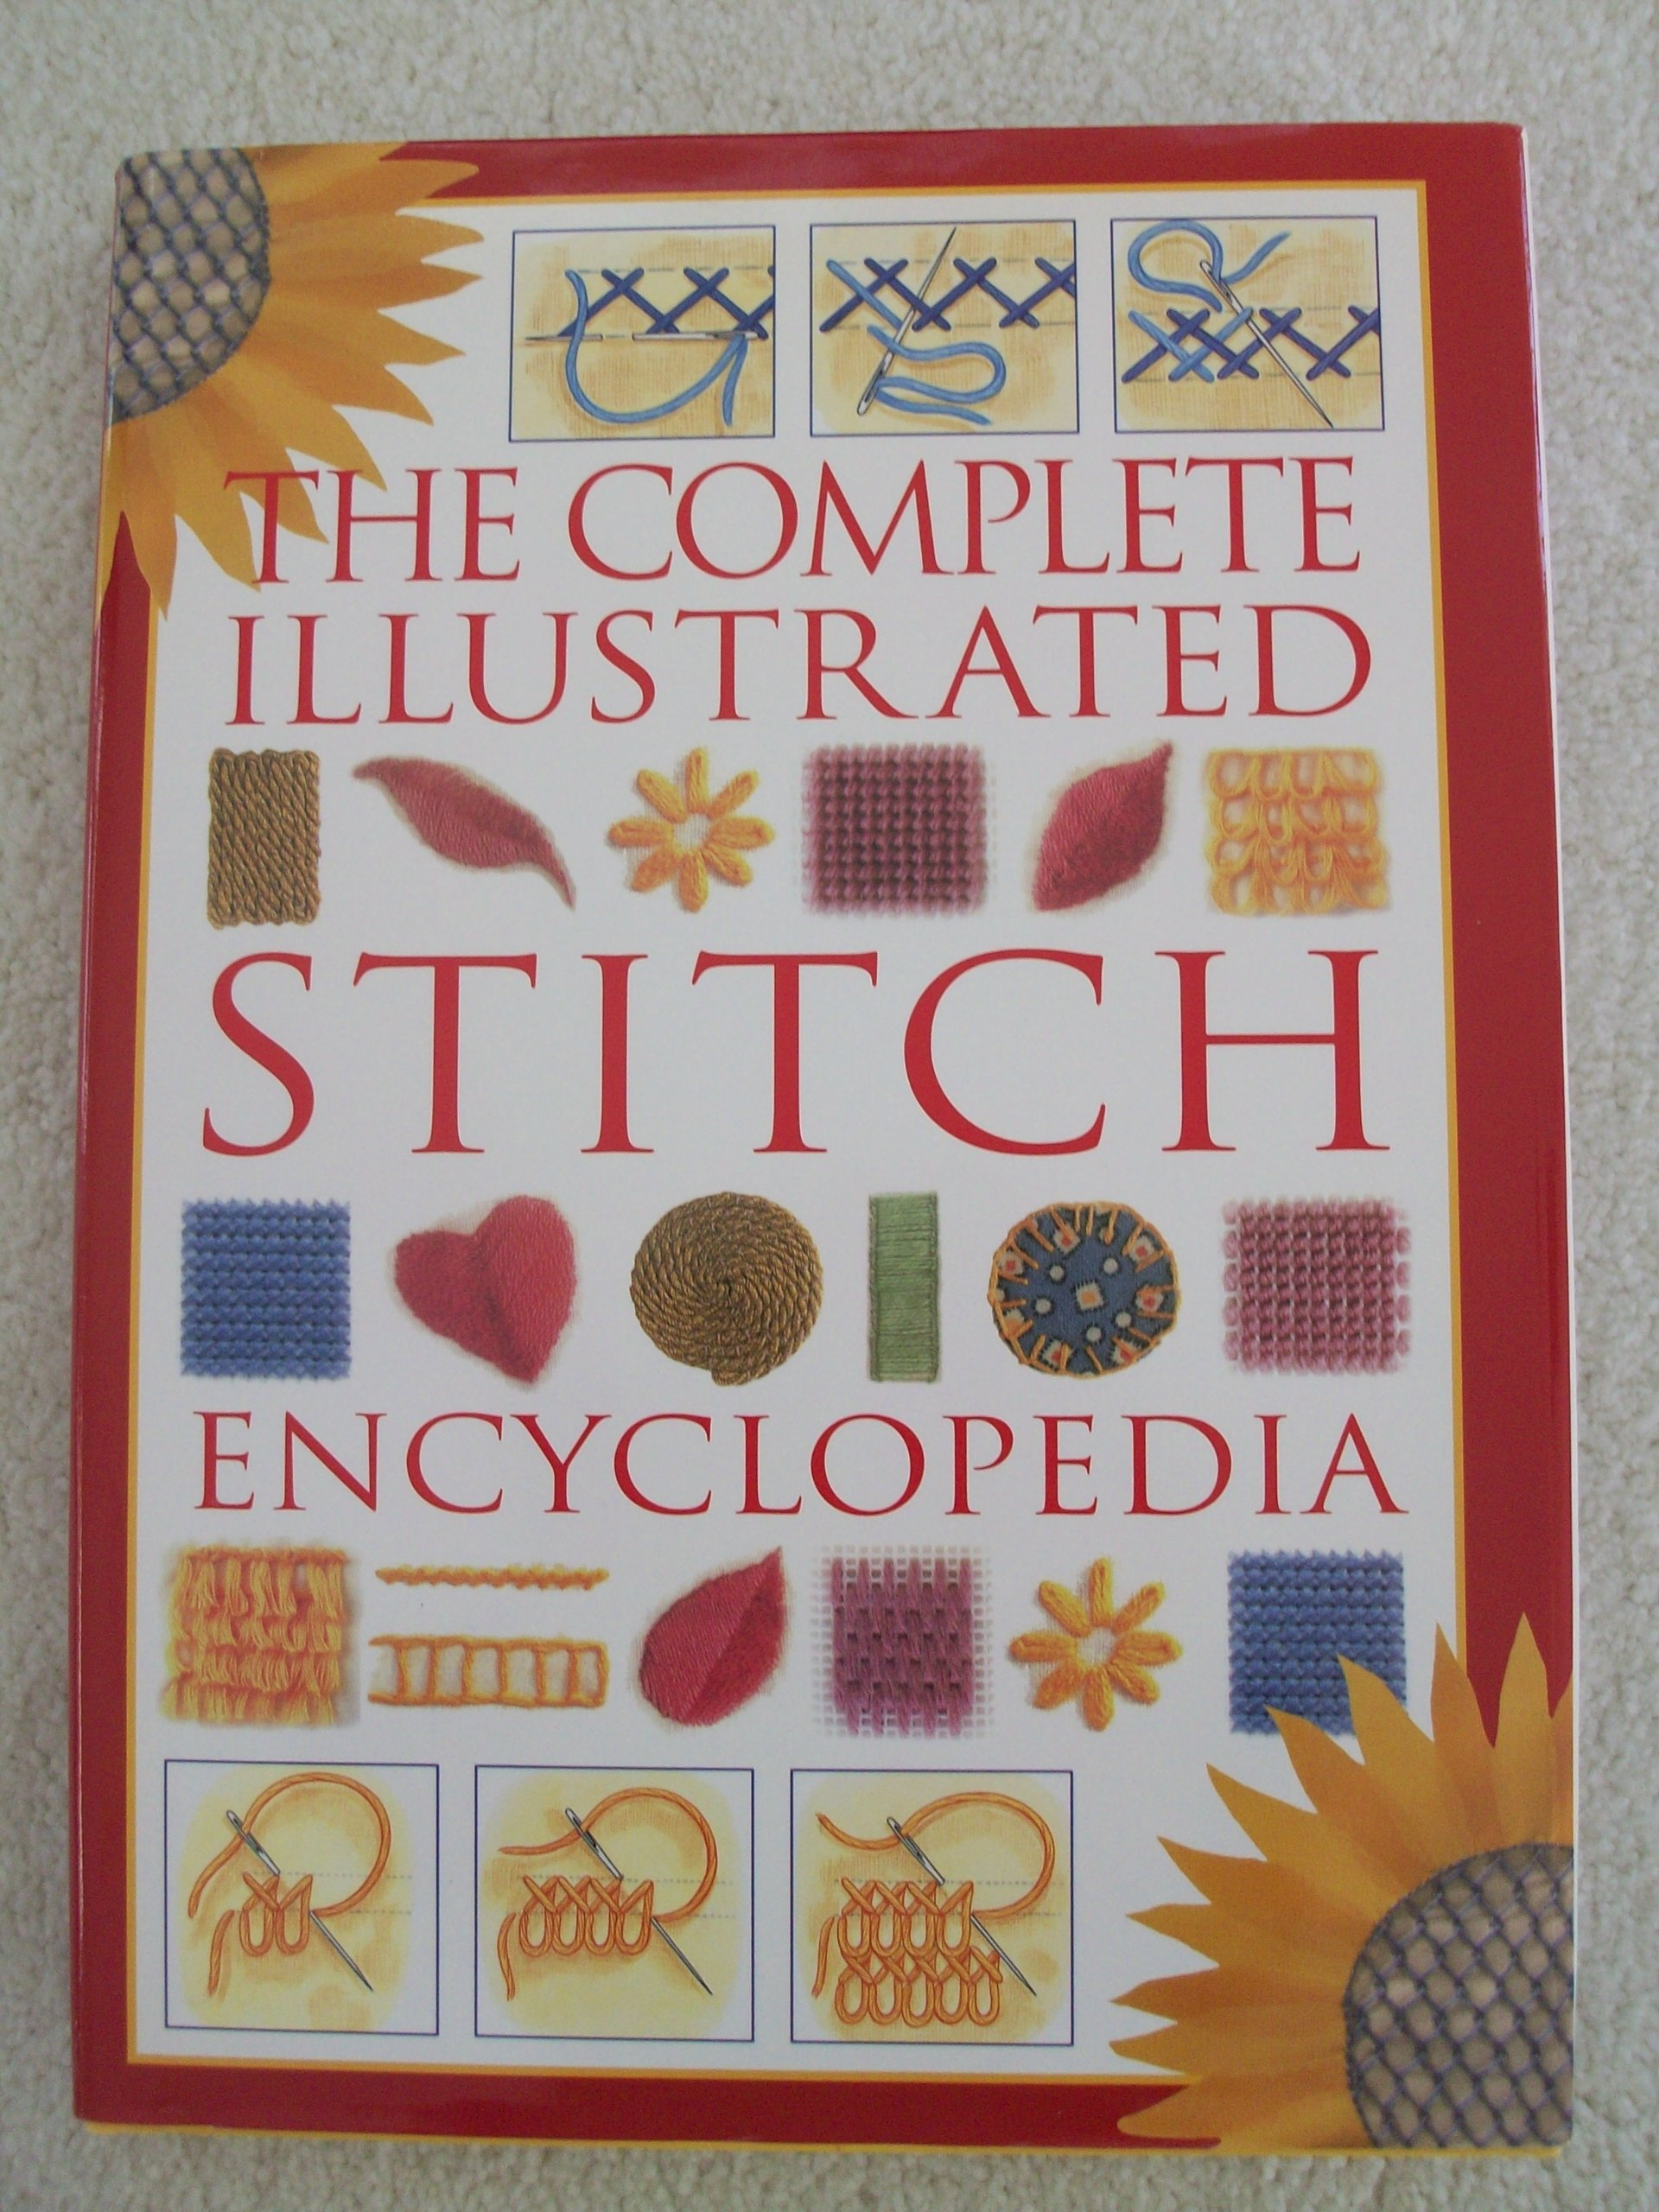 Complete Illustrated Stitch Encyclopedia, Crafter's Choice